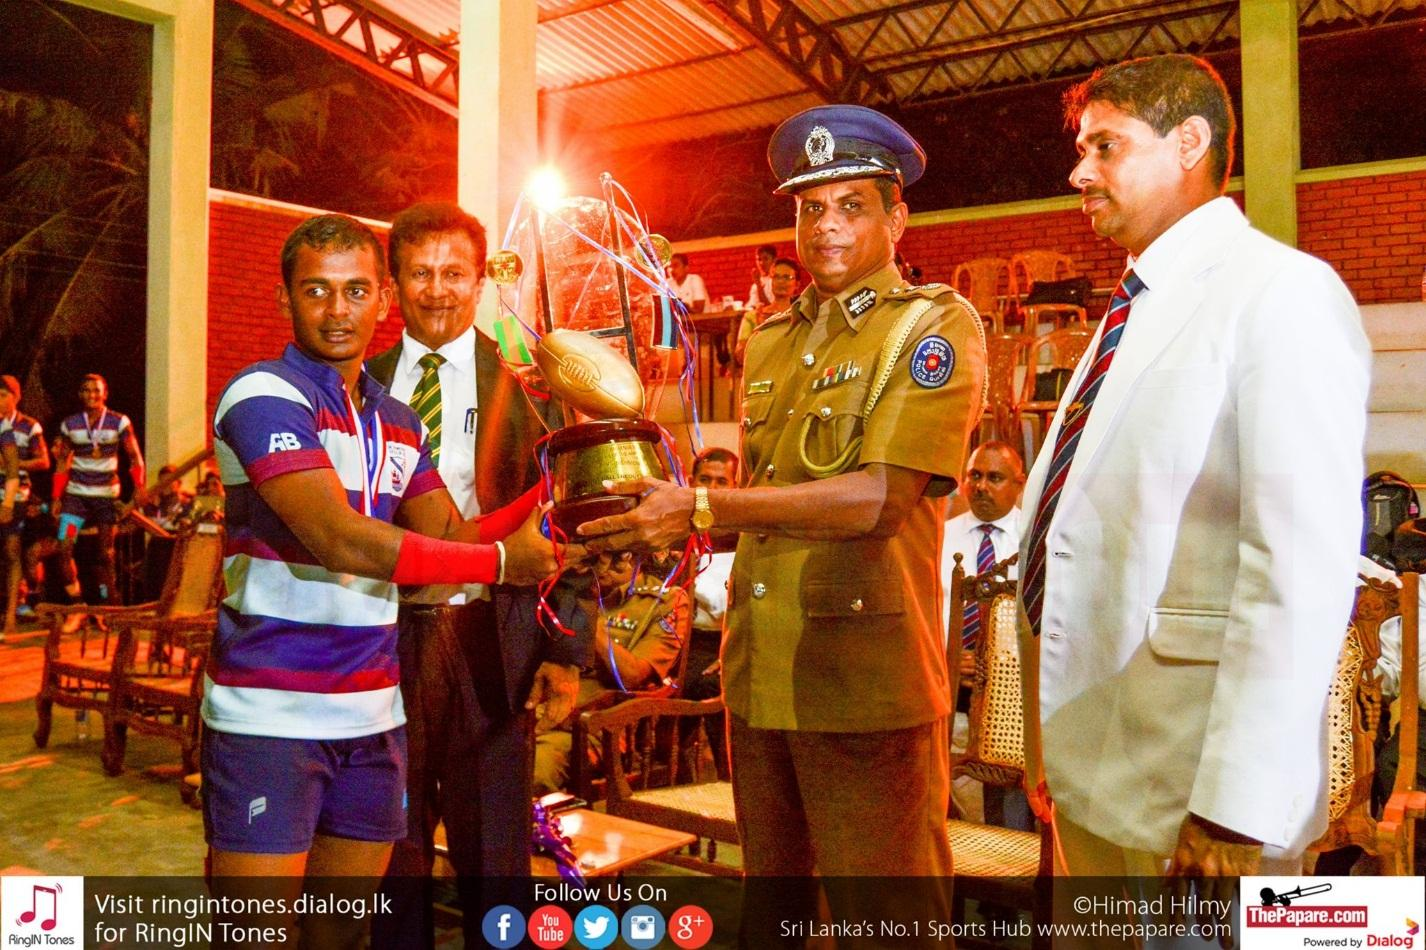 Richmond College Galle won last year's encounter played at Koggala Grounds